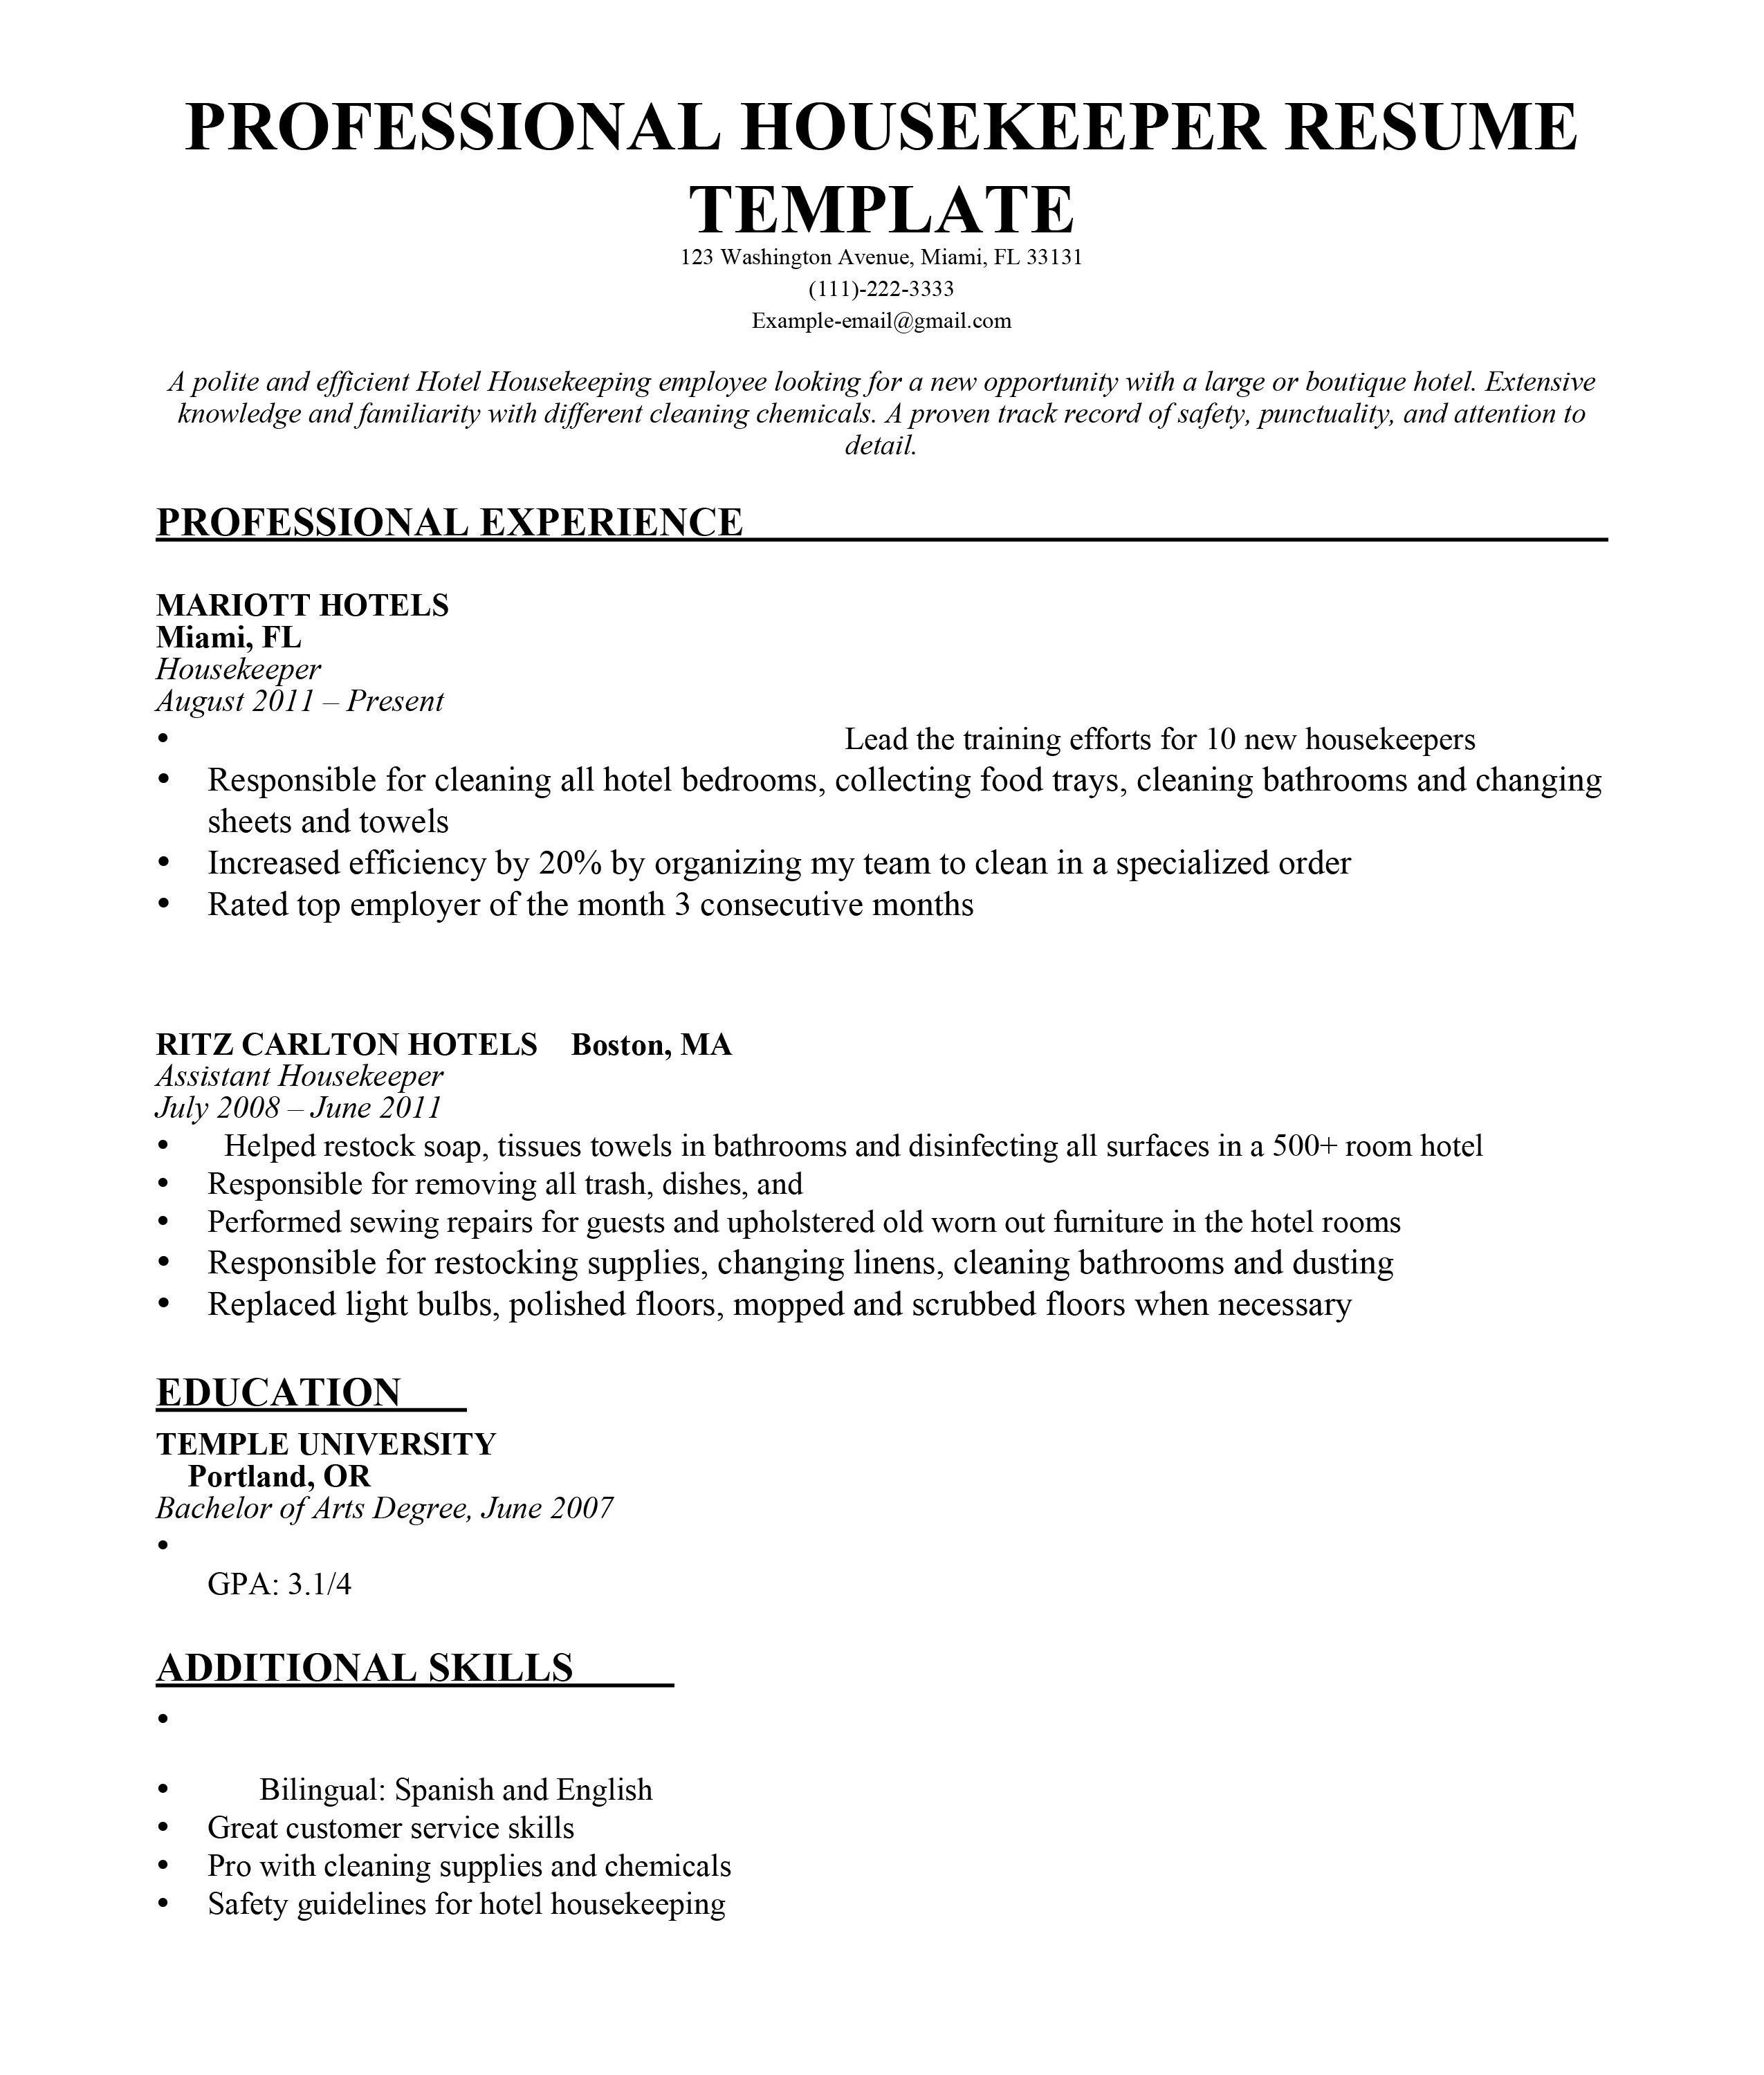 Cleaning Service Resume - Cleaning Service Resume Awesome Resume for Cleaner Awesome House